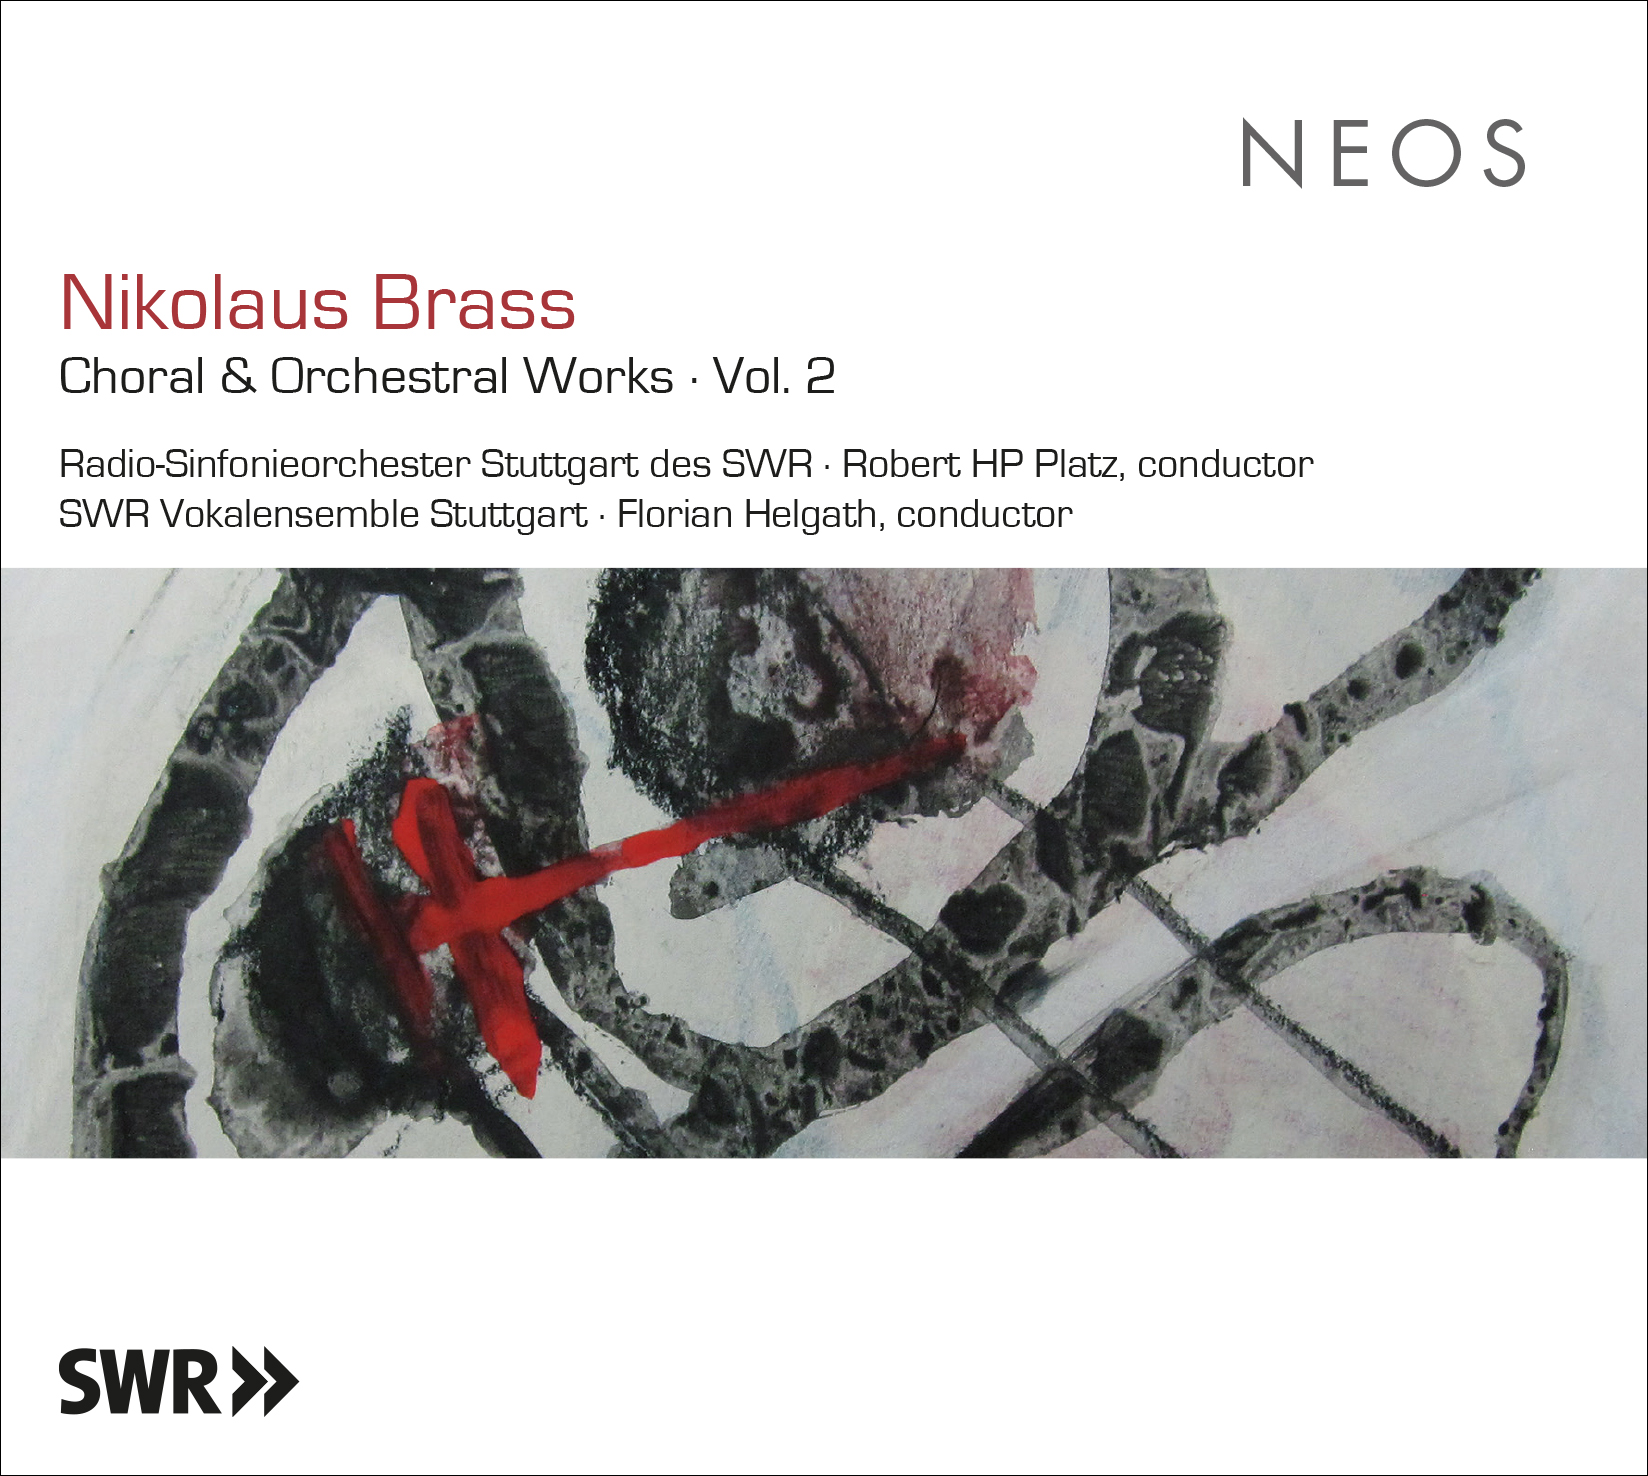 Novedades discográficas: «Choral and Orchestral Works Vol. 2» de Nikolaus Brass